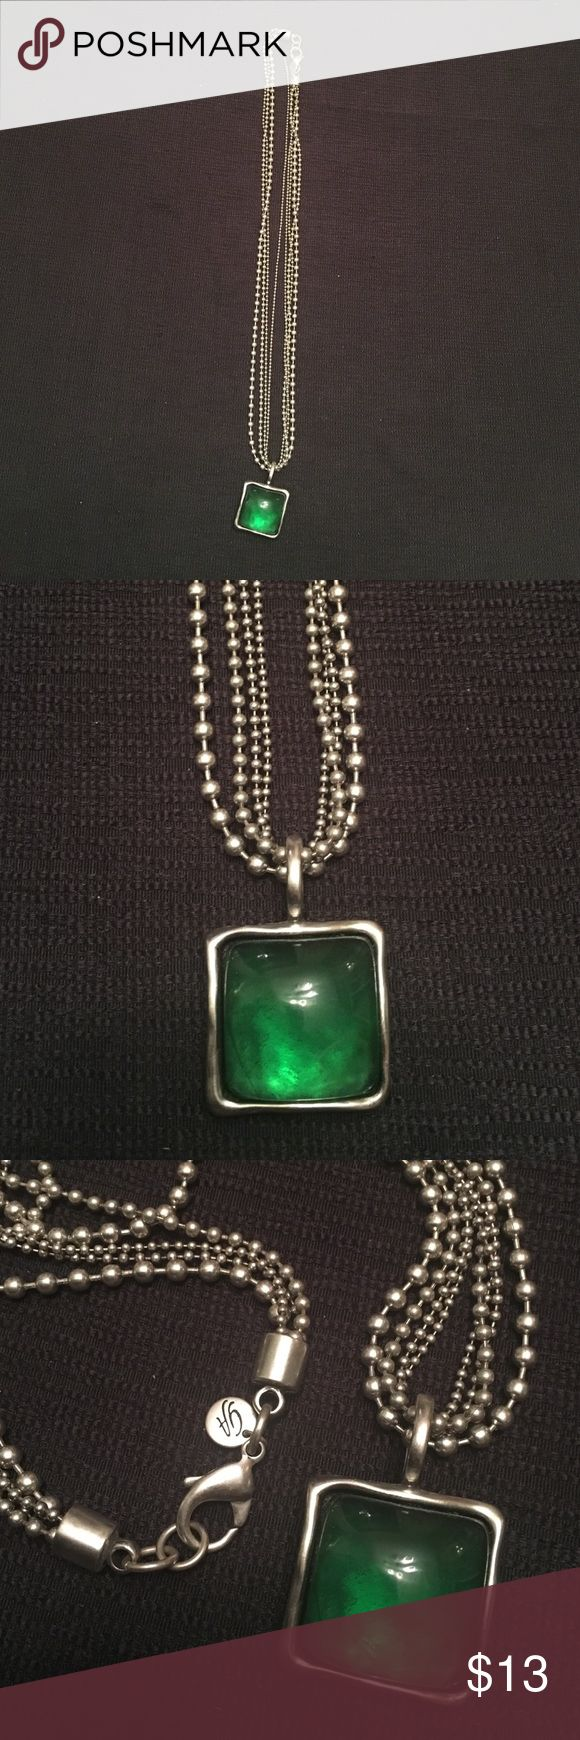 Stunning Grace Adele Necklace 💚 Beautiful Necklace by Grace Adele 💚 Grace Adele Jewelry Necklaces